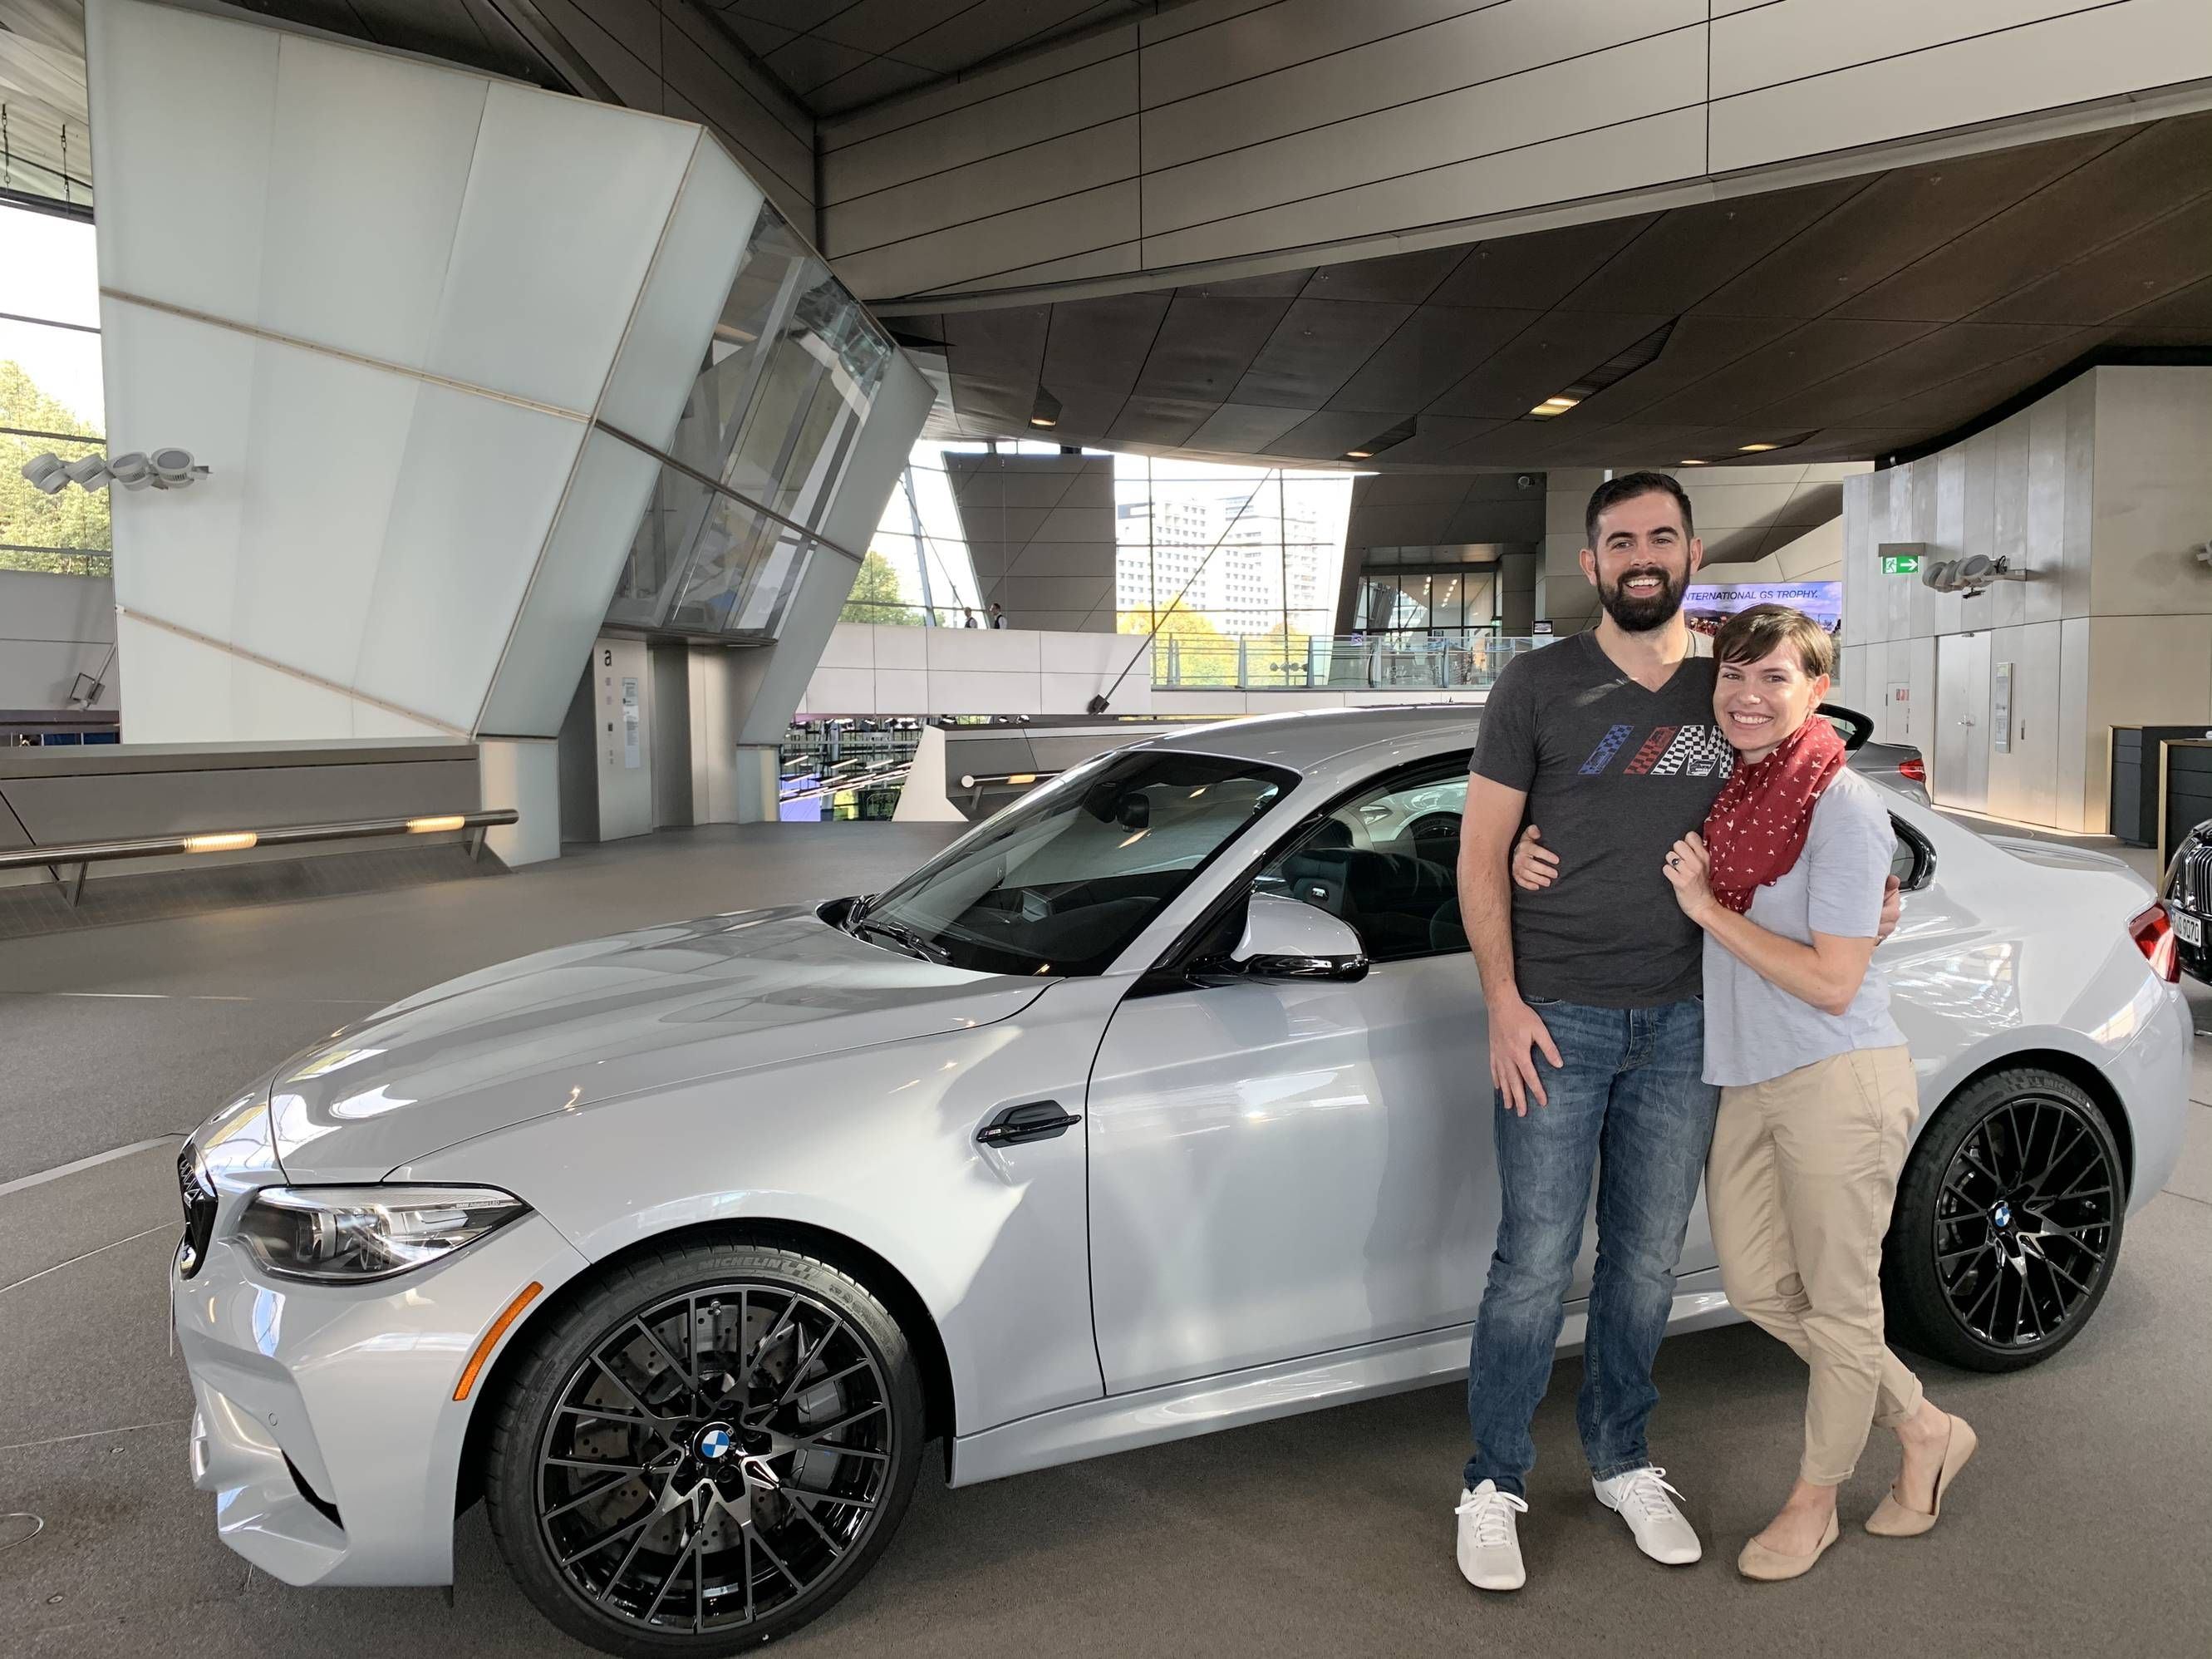 Dream Achieved Euro Delivery Of A New M2 Comp Friends Wife Surprised Him With The Exact Same Car Bmw Price Bmw Car